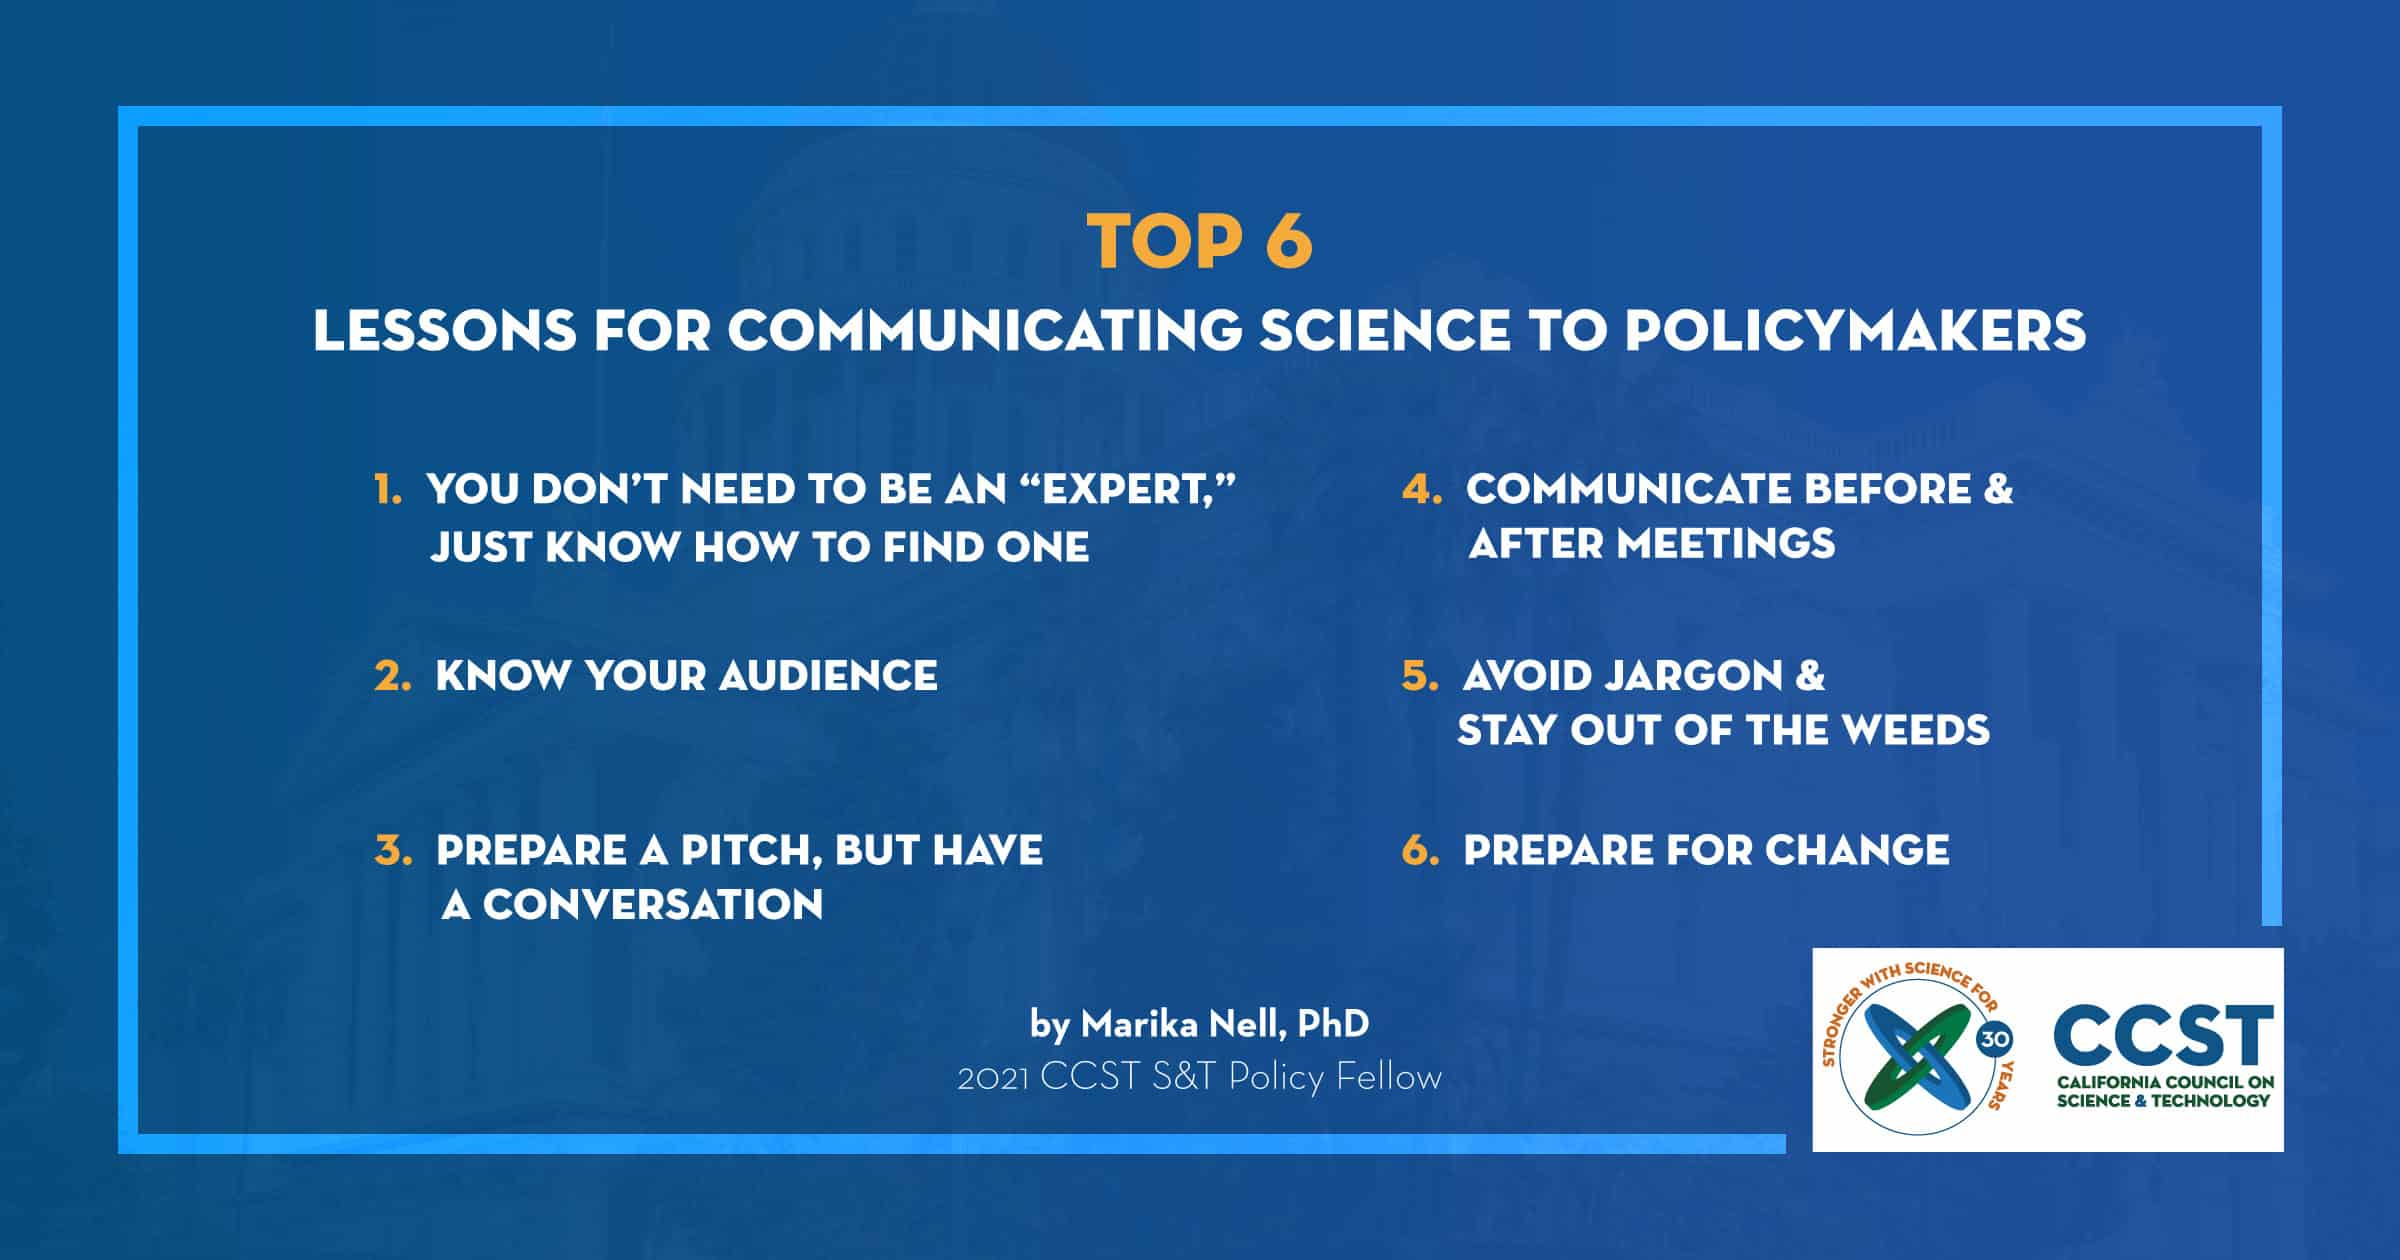 A list of Marika's Top 6 lessons for communicating science to policymakers on a blue background